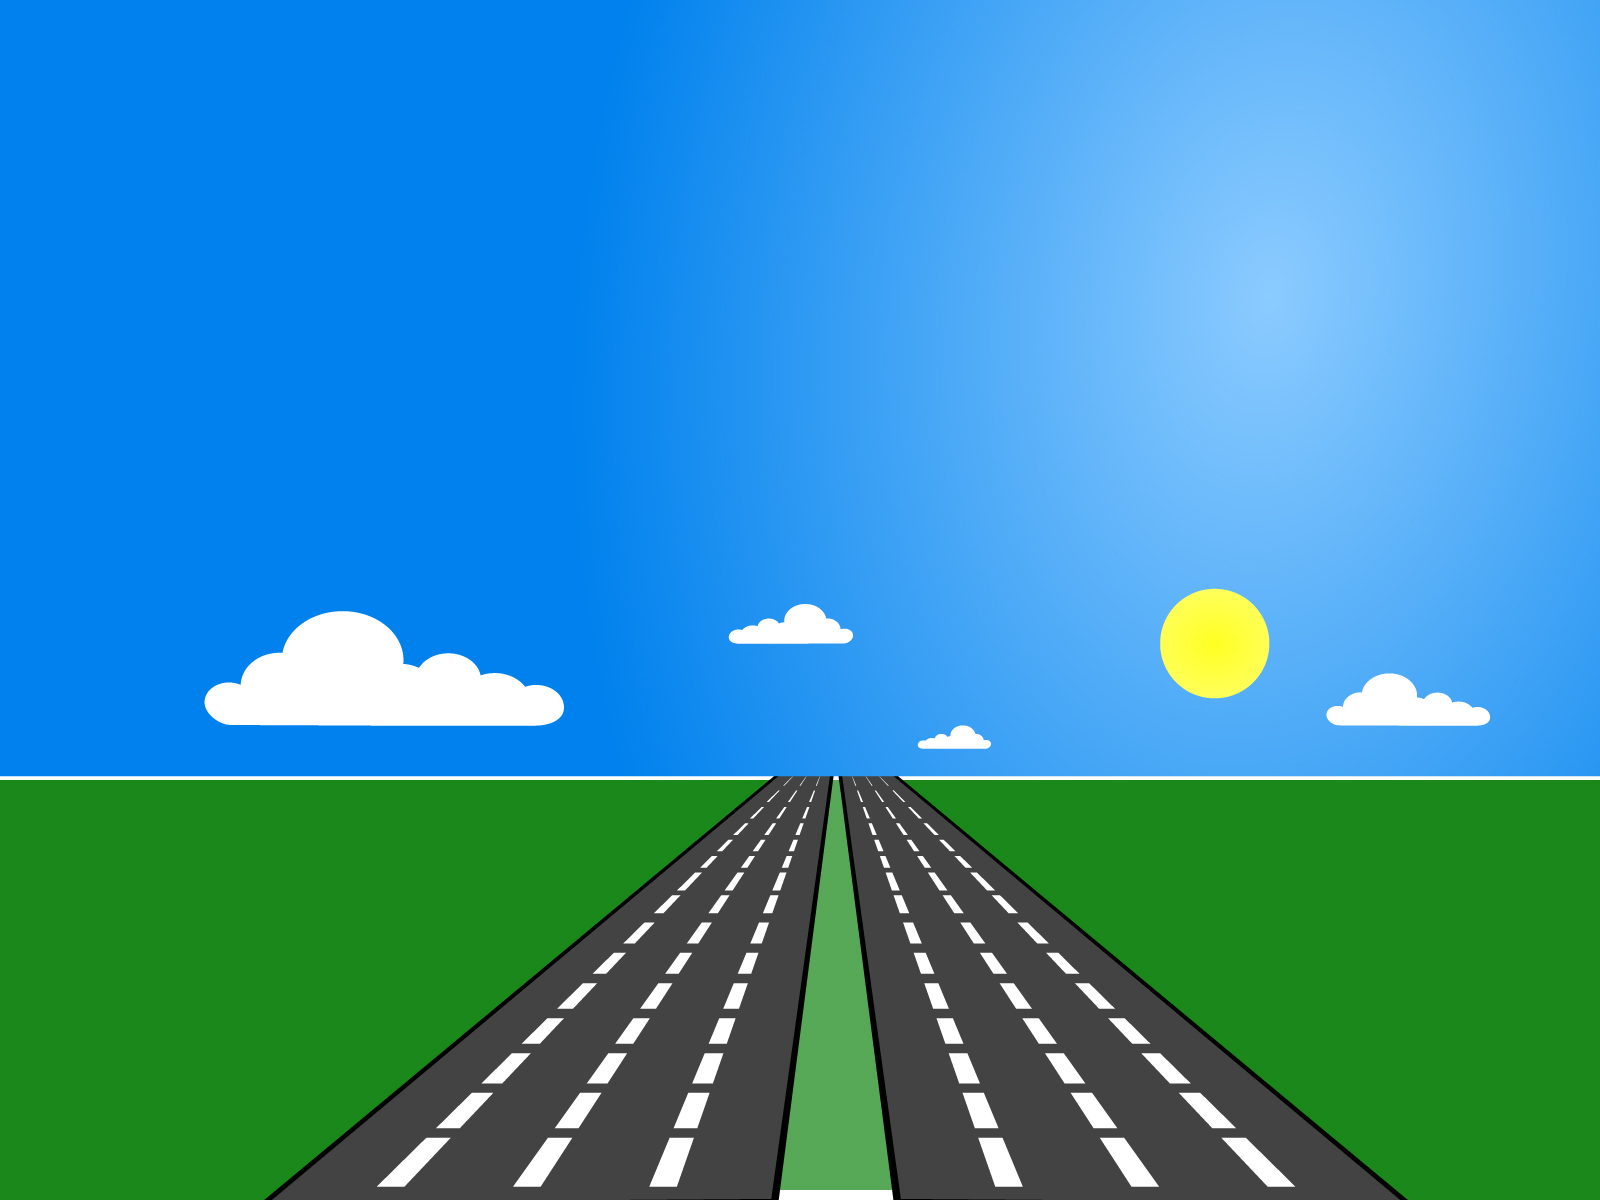 road transportation backgrounds blue green